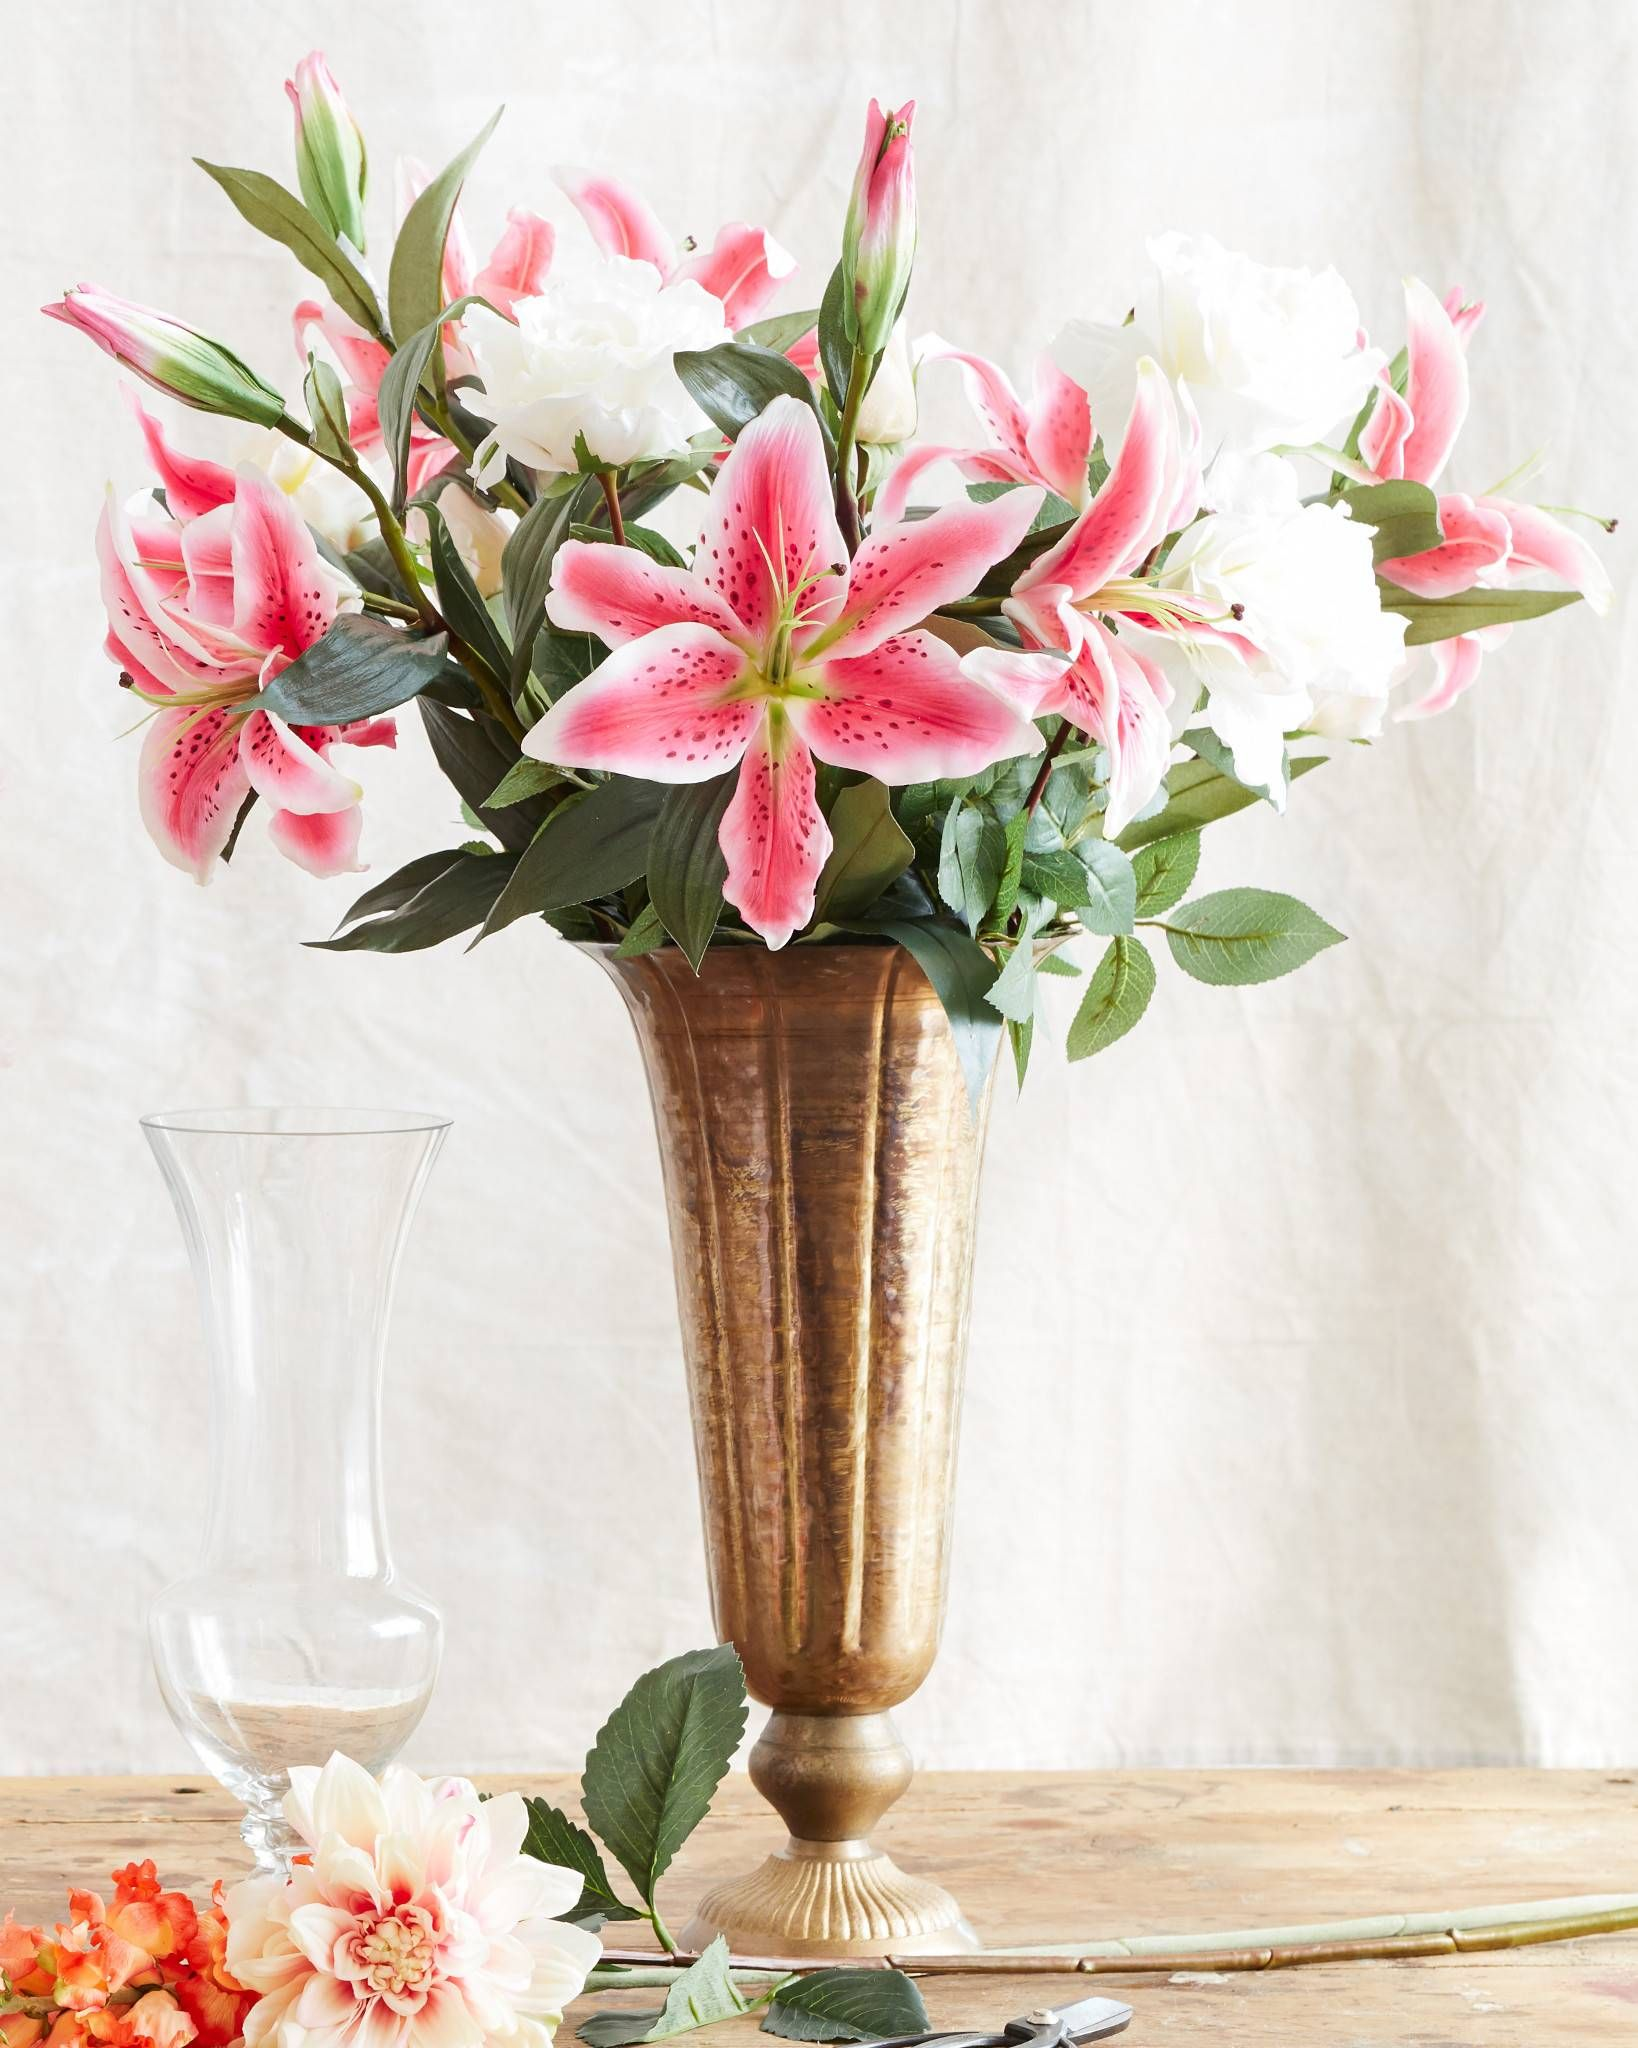 Our Casablanca Lily Flower Stems Are Exquisite Reflections Of Nature S Beauty This Balsam Hill Exclusive Features Lily Flower Flower Vases Artificial Flowers